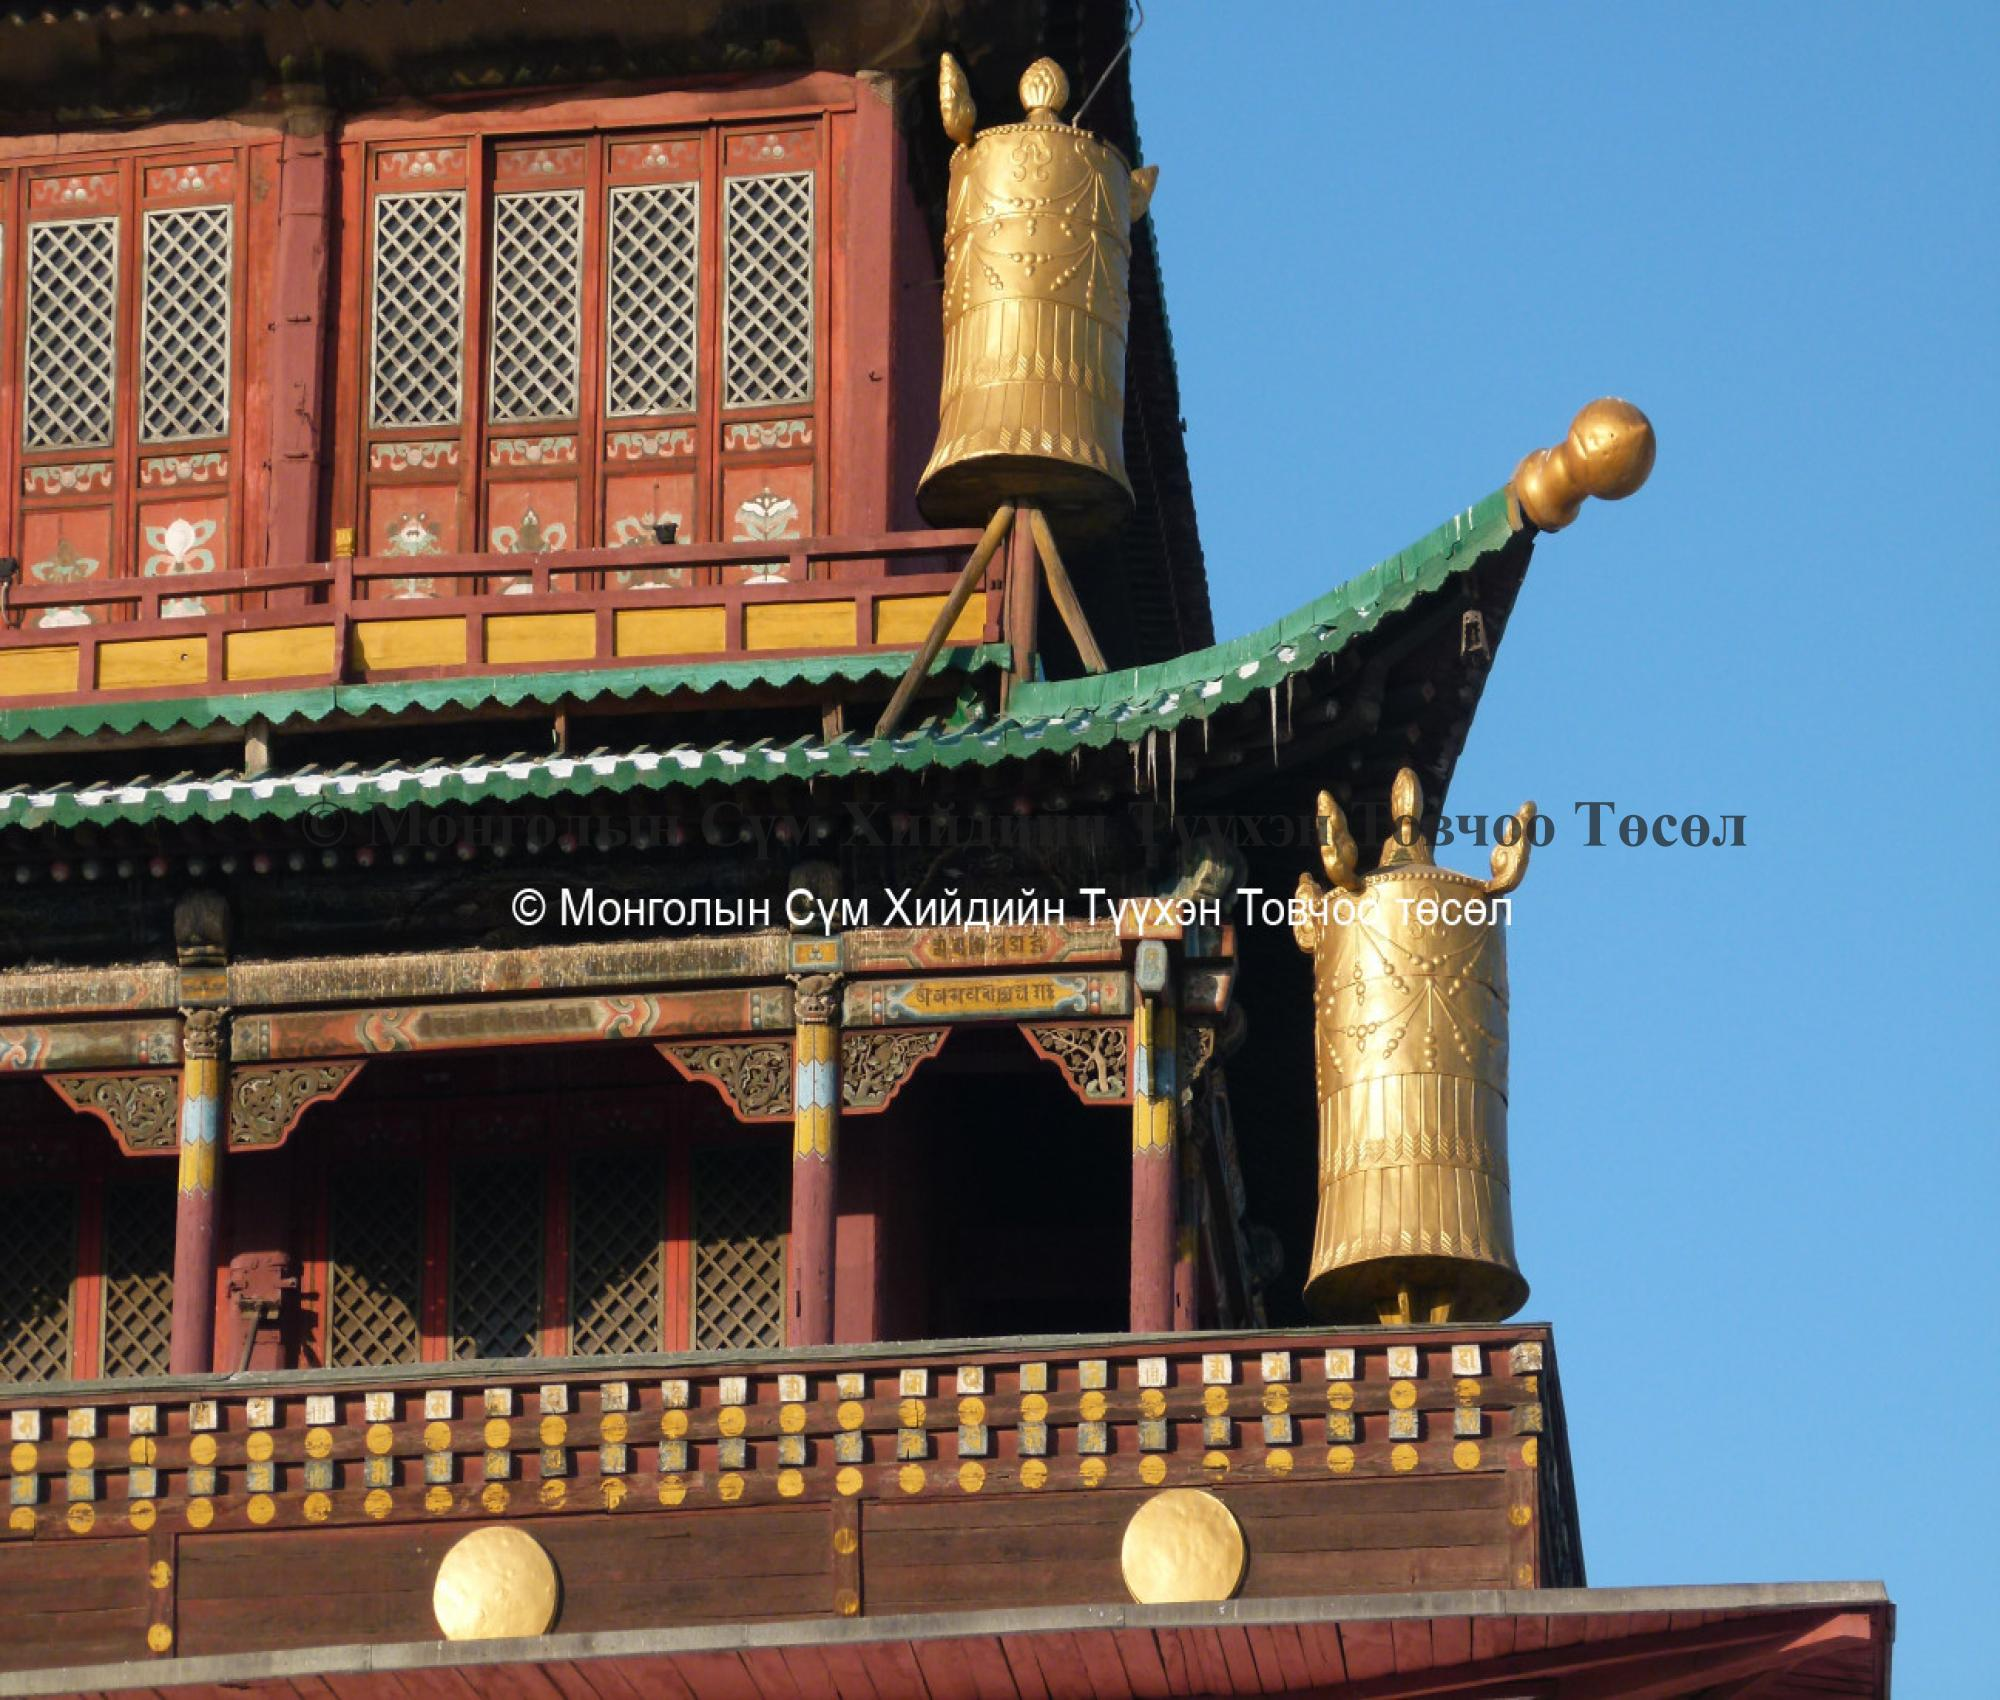 Roof ornaments of Migjid Janraisig temple